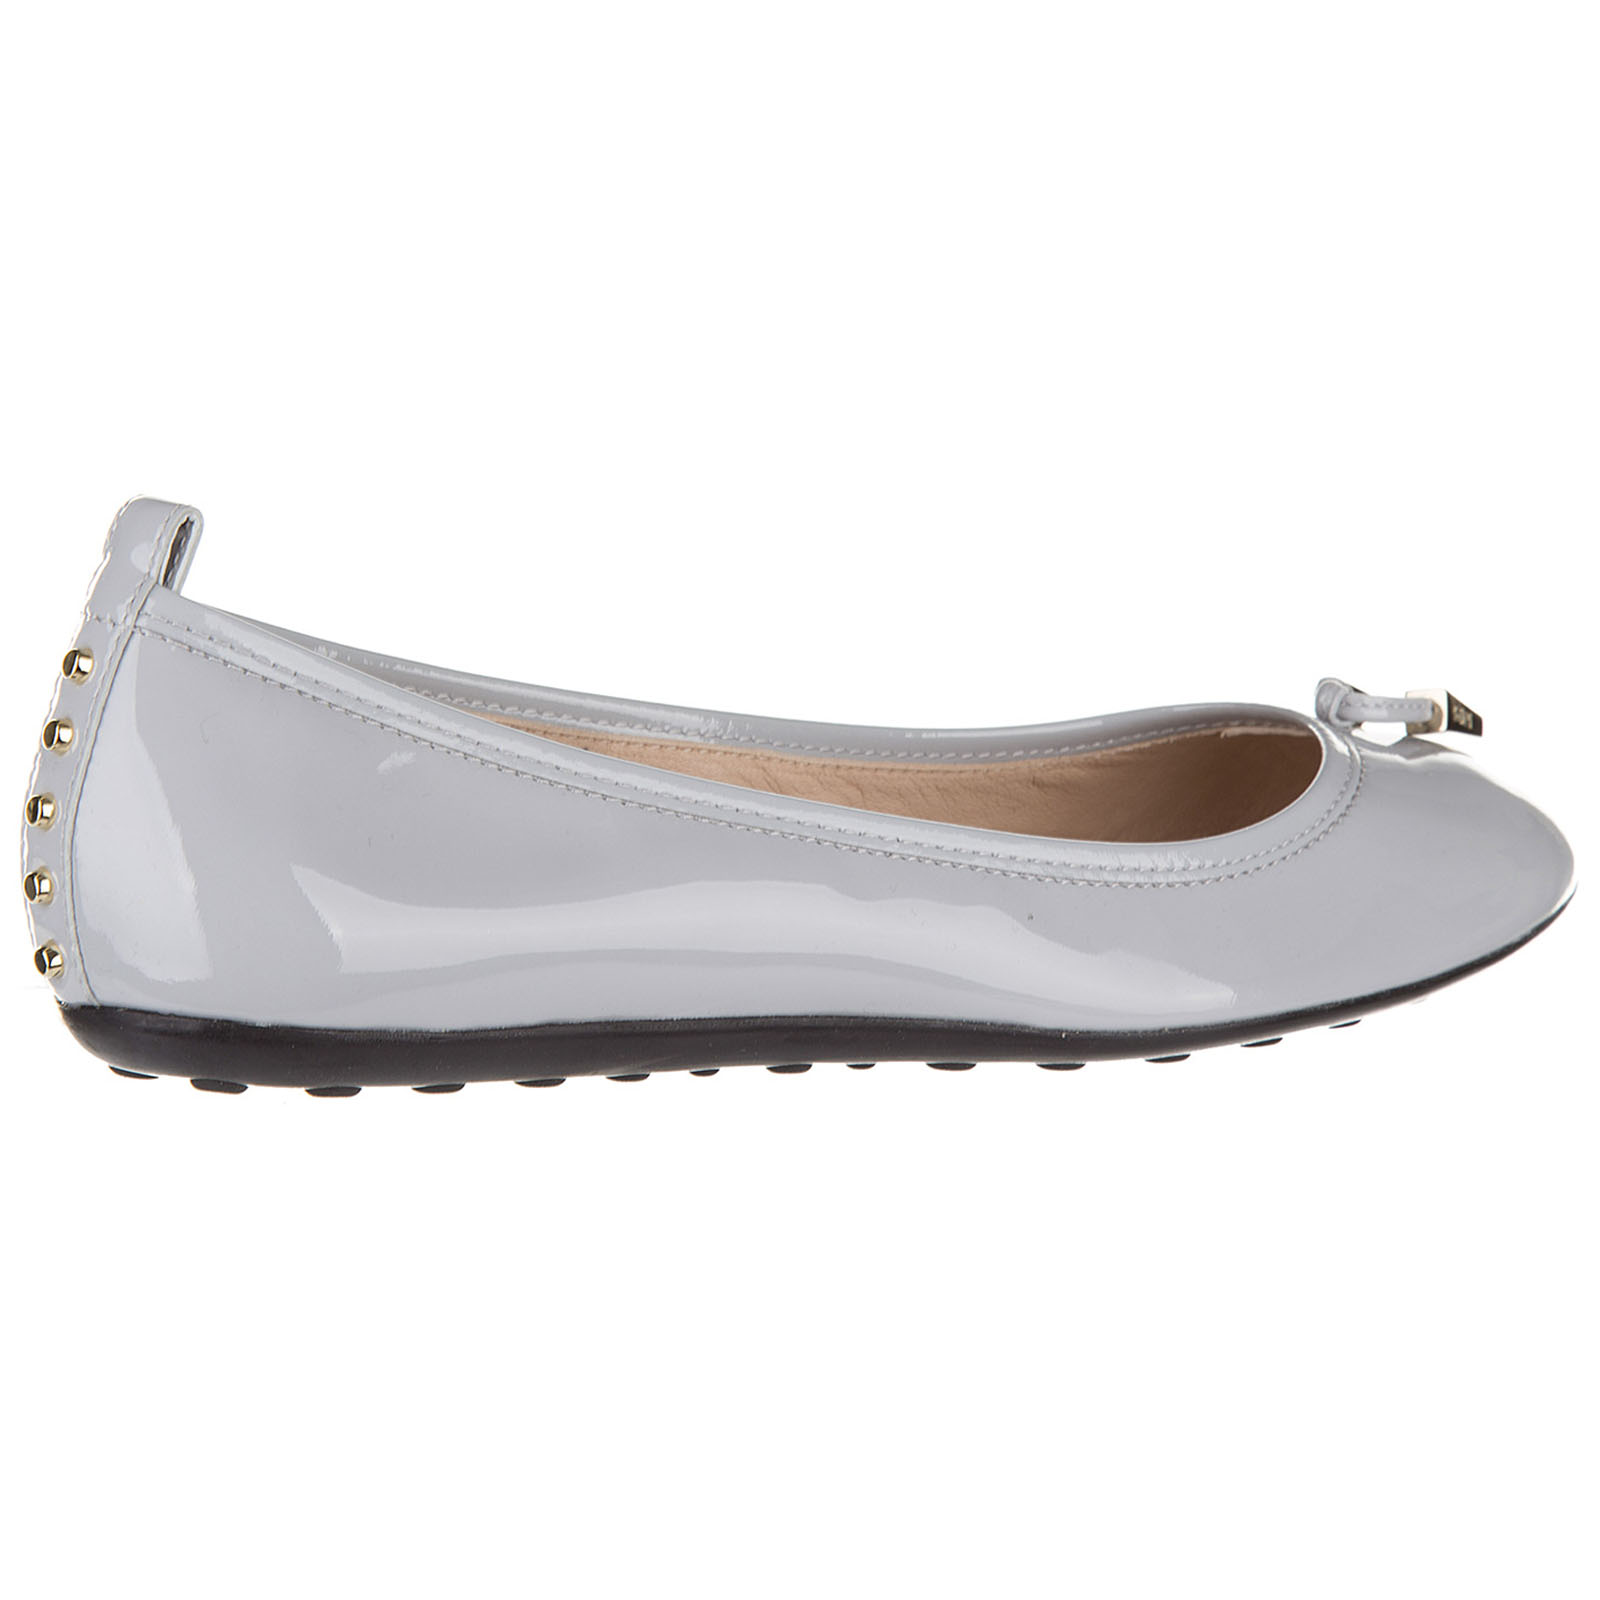 Women's leather ballet flats ballerinas  des yh laccetto terminali